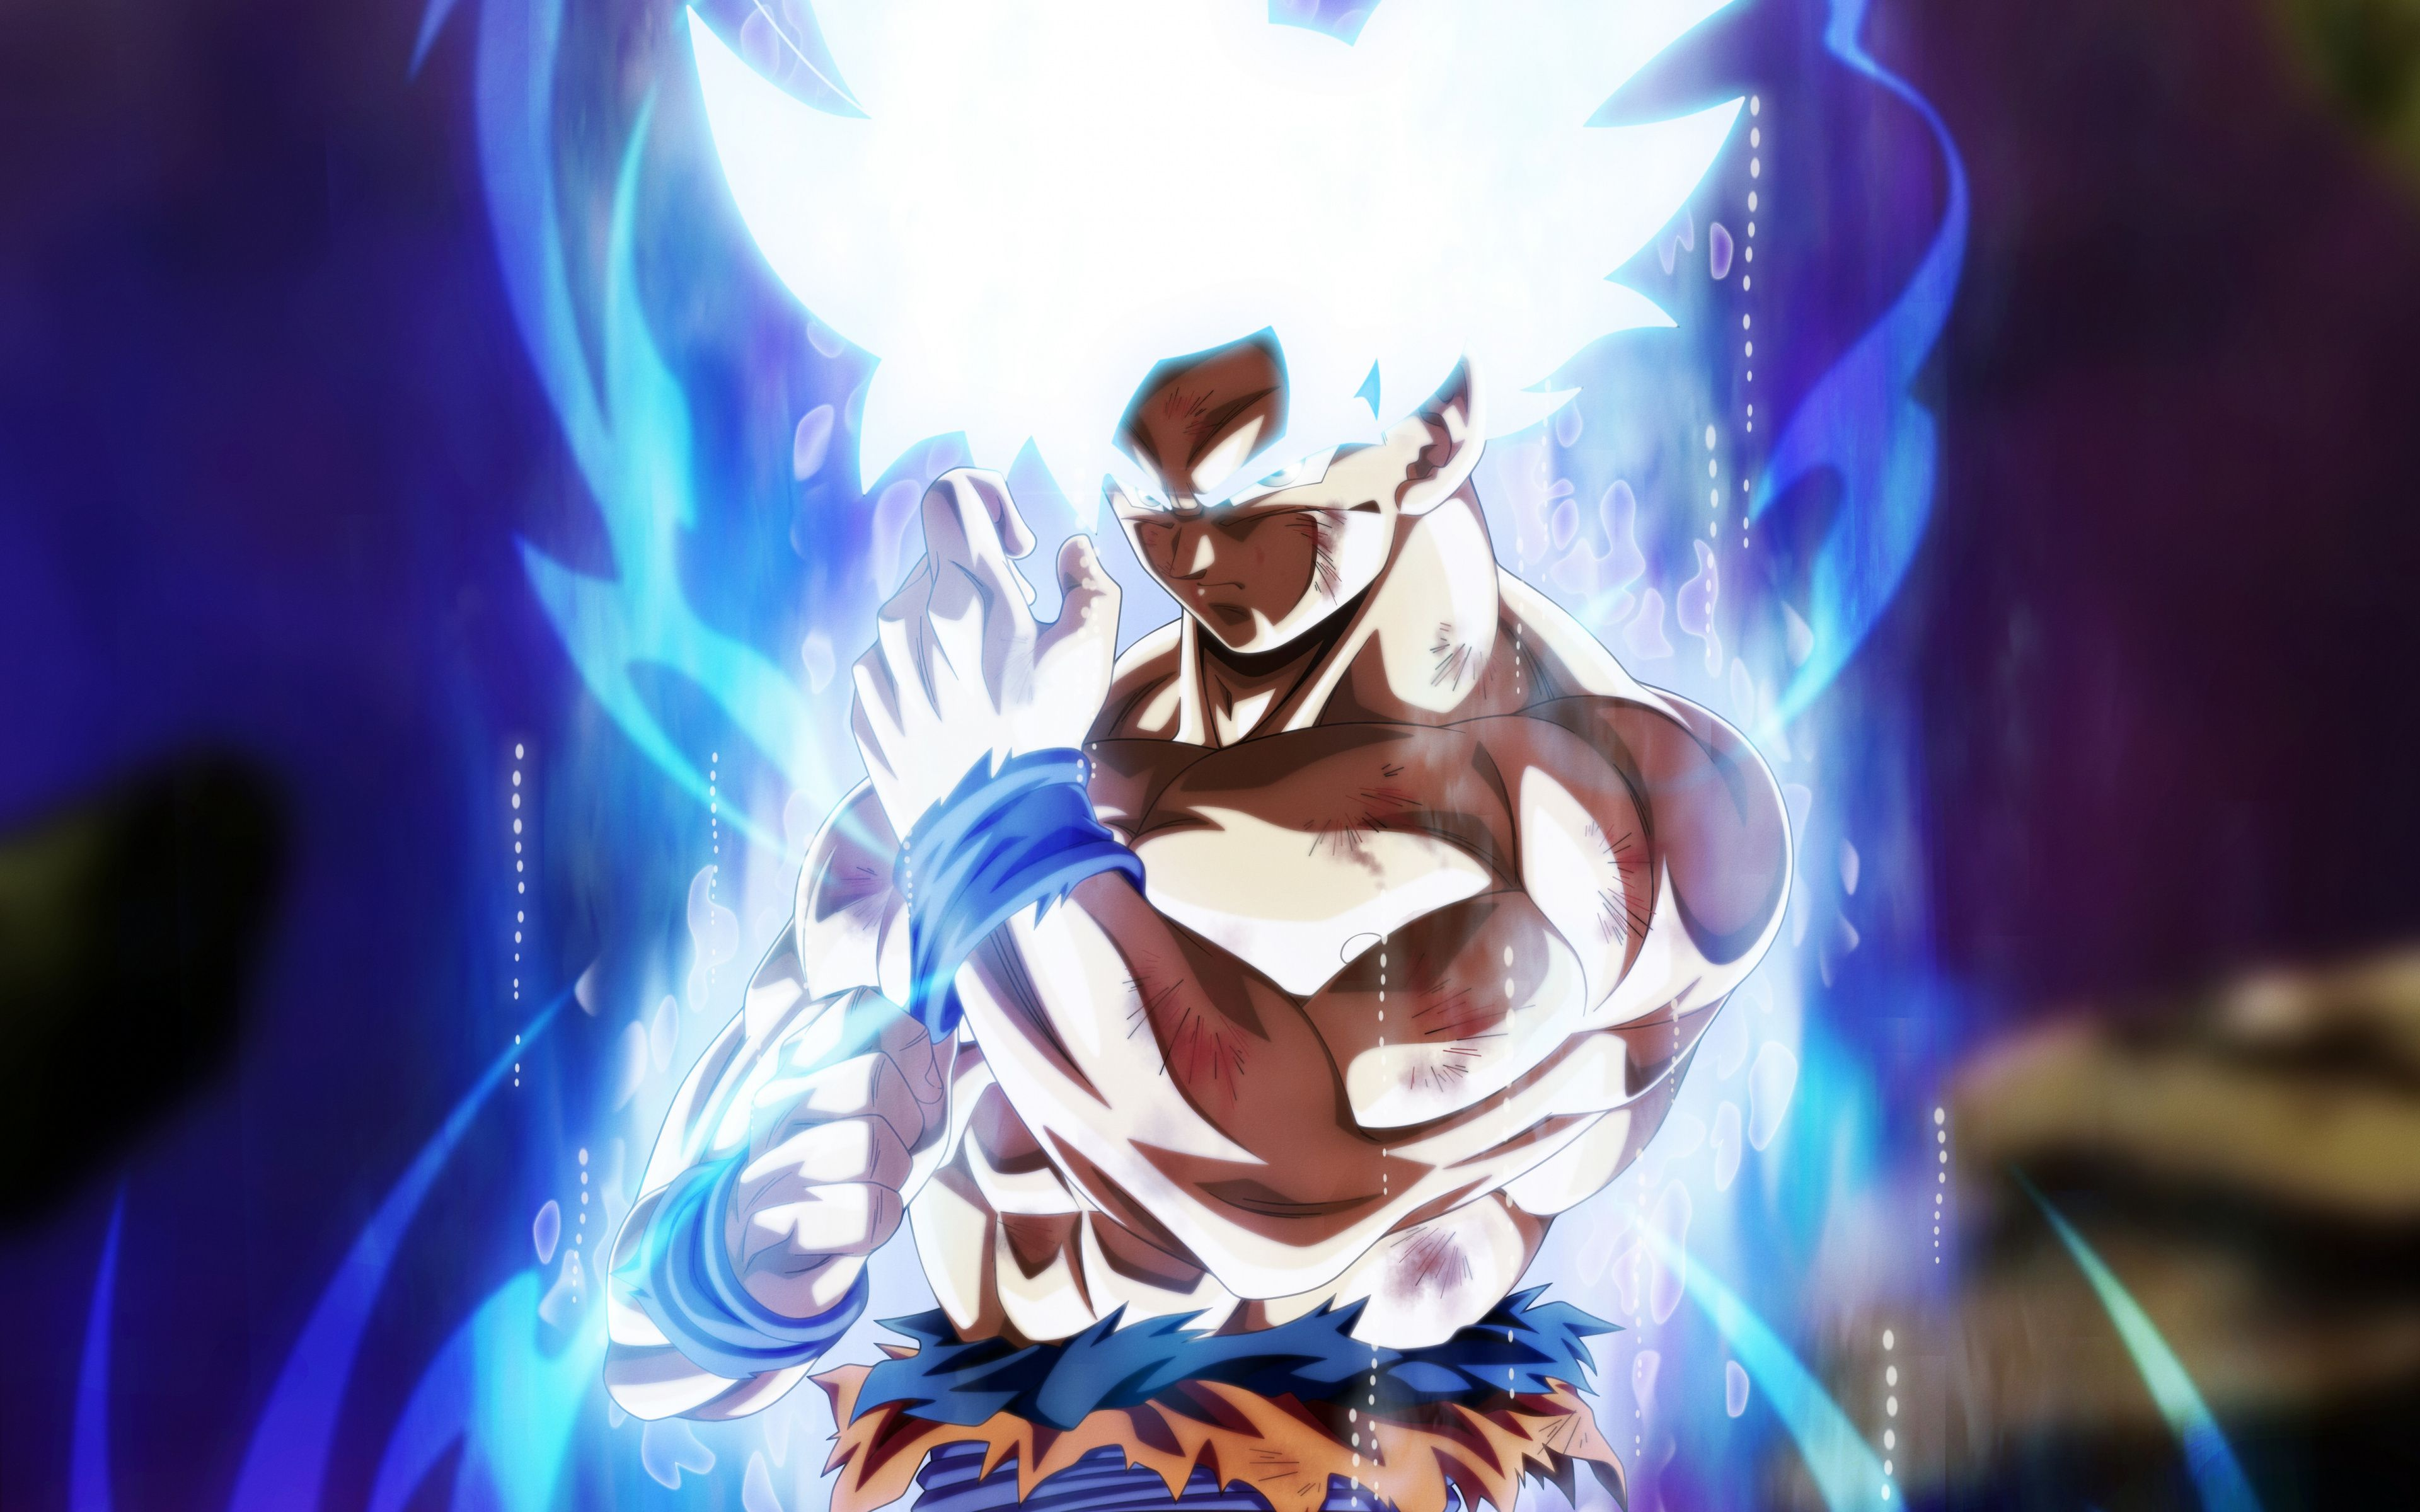 Ultra Hd Dragon Ball Wallpapers 4k Download 3840x2400 Wallpaper Goku Dragon Ball Anime Dragon Ball Super Dragon Ball Super Wallpapers Dragon Ball Super Manga